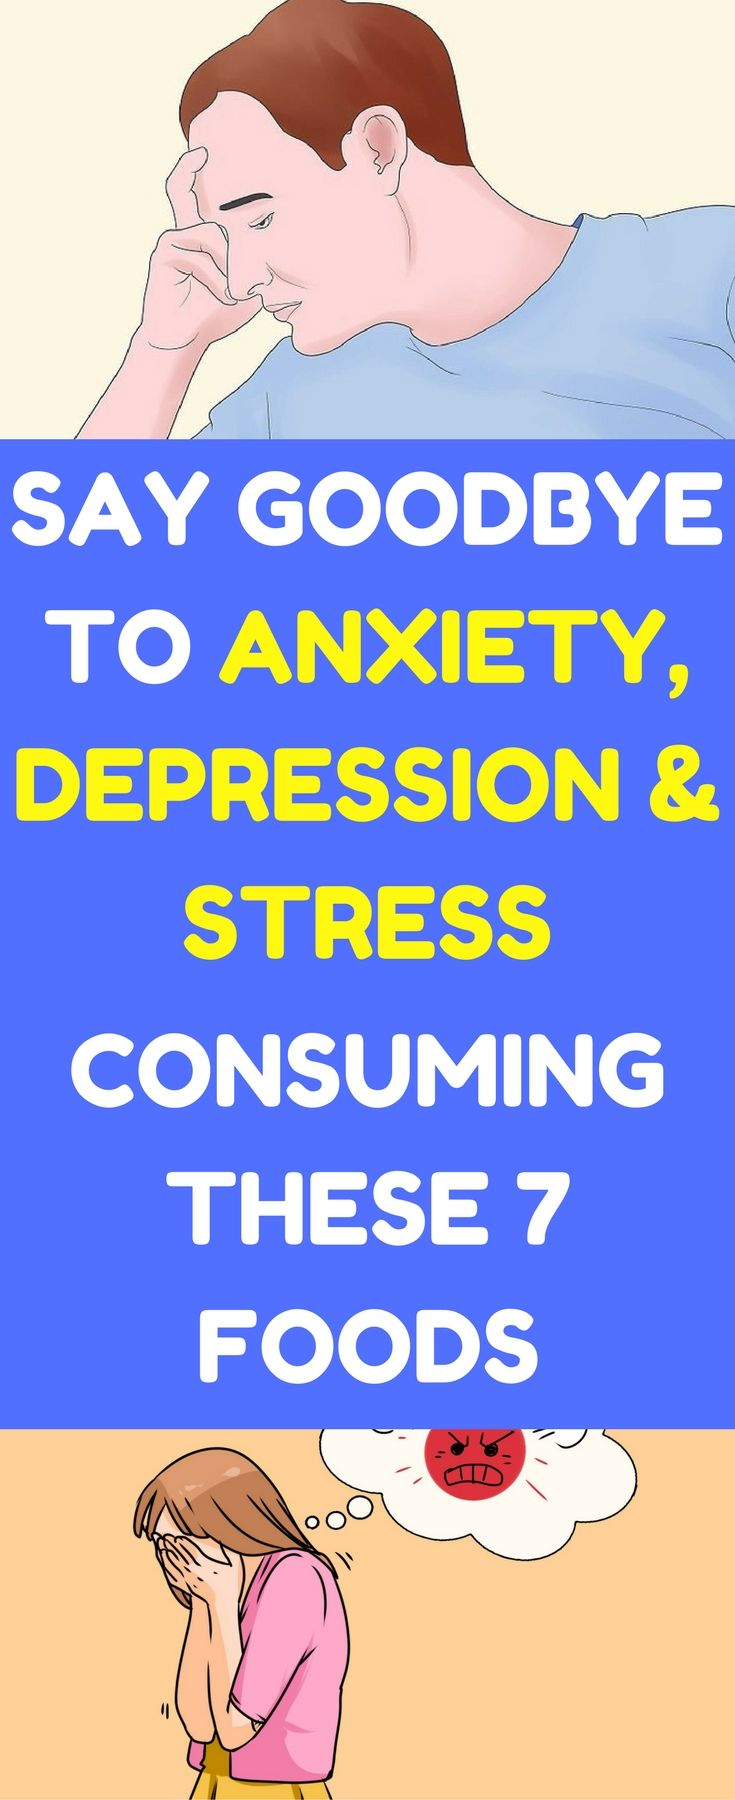 Consume these foods for stress relief, depression and anxiety.